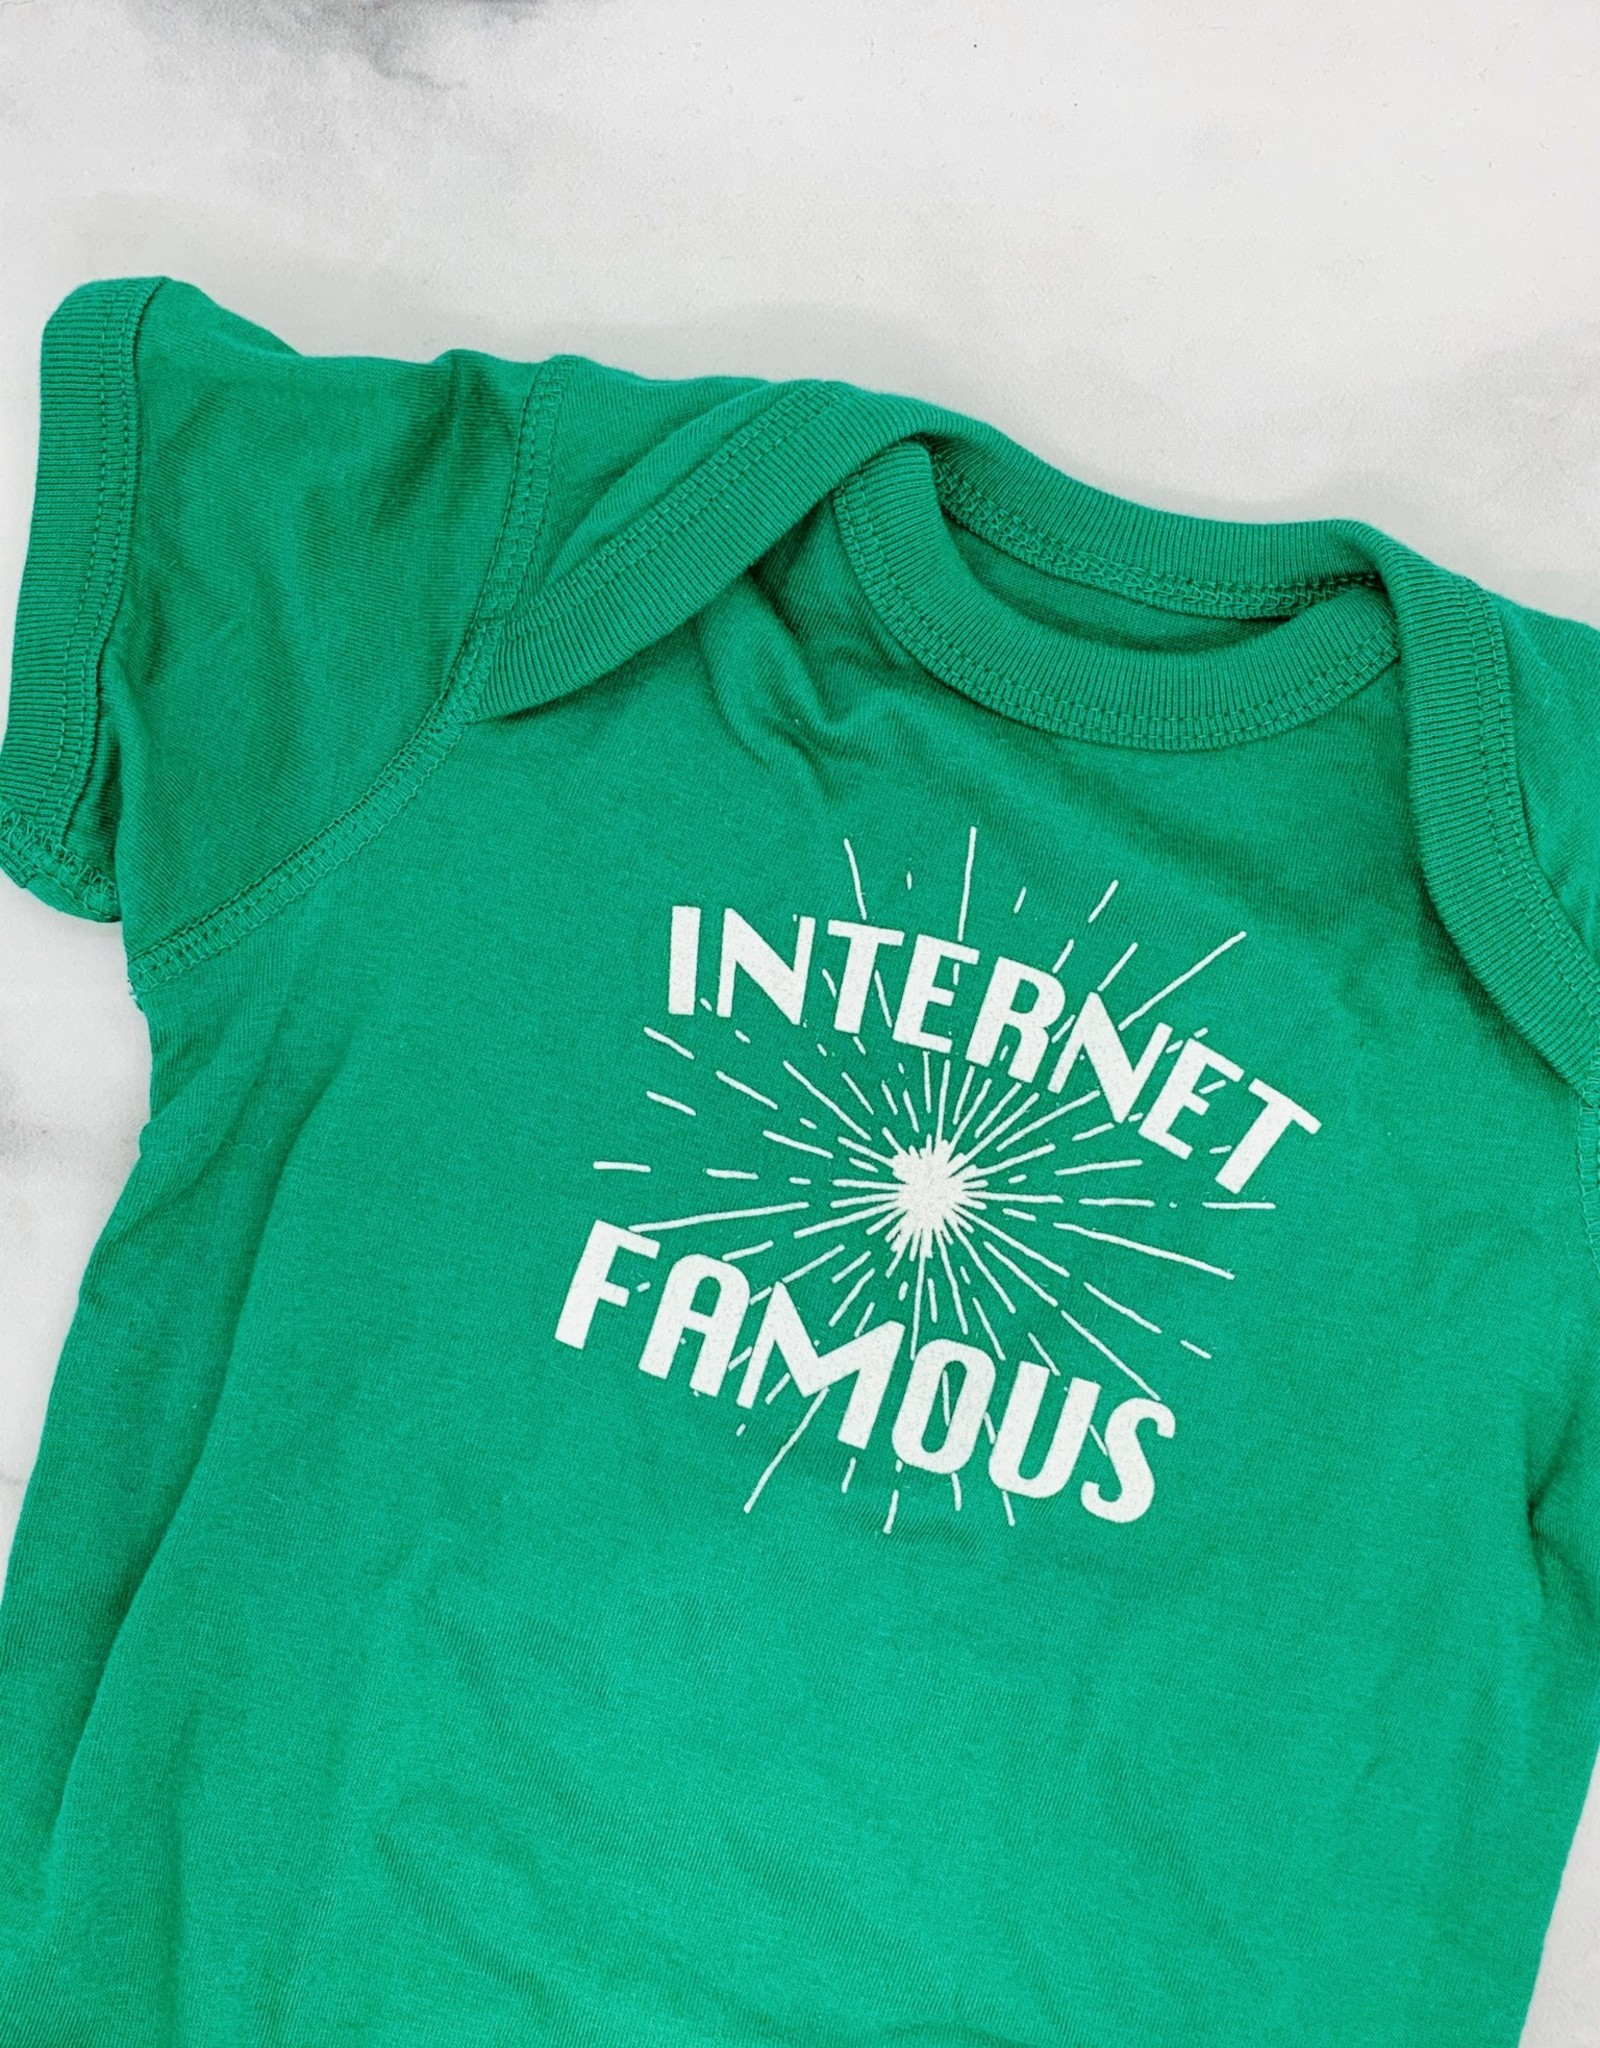 Internet Famous onesie, Kelly Green, 6-12 month